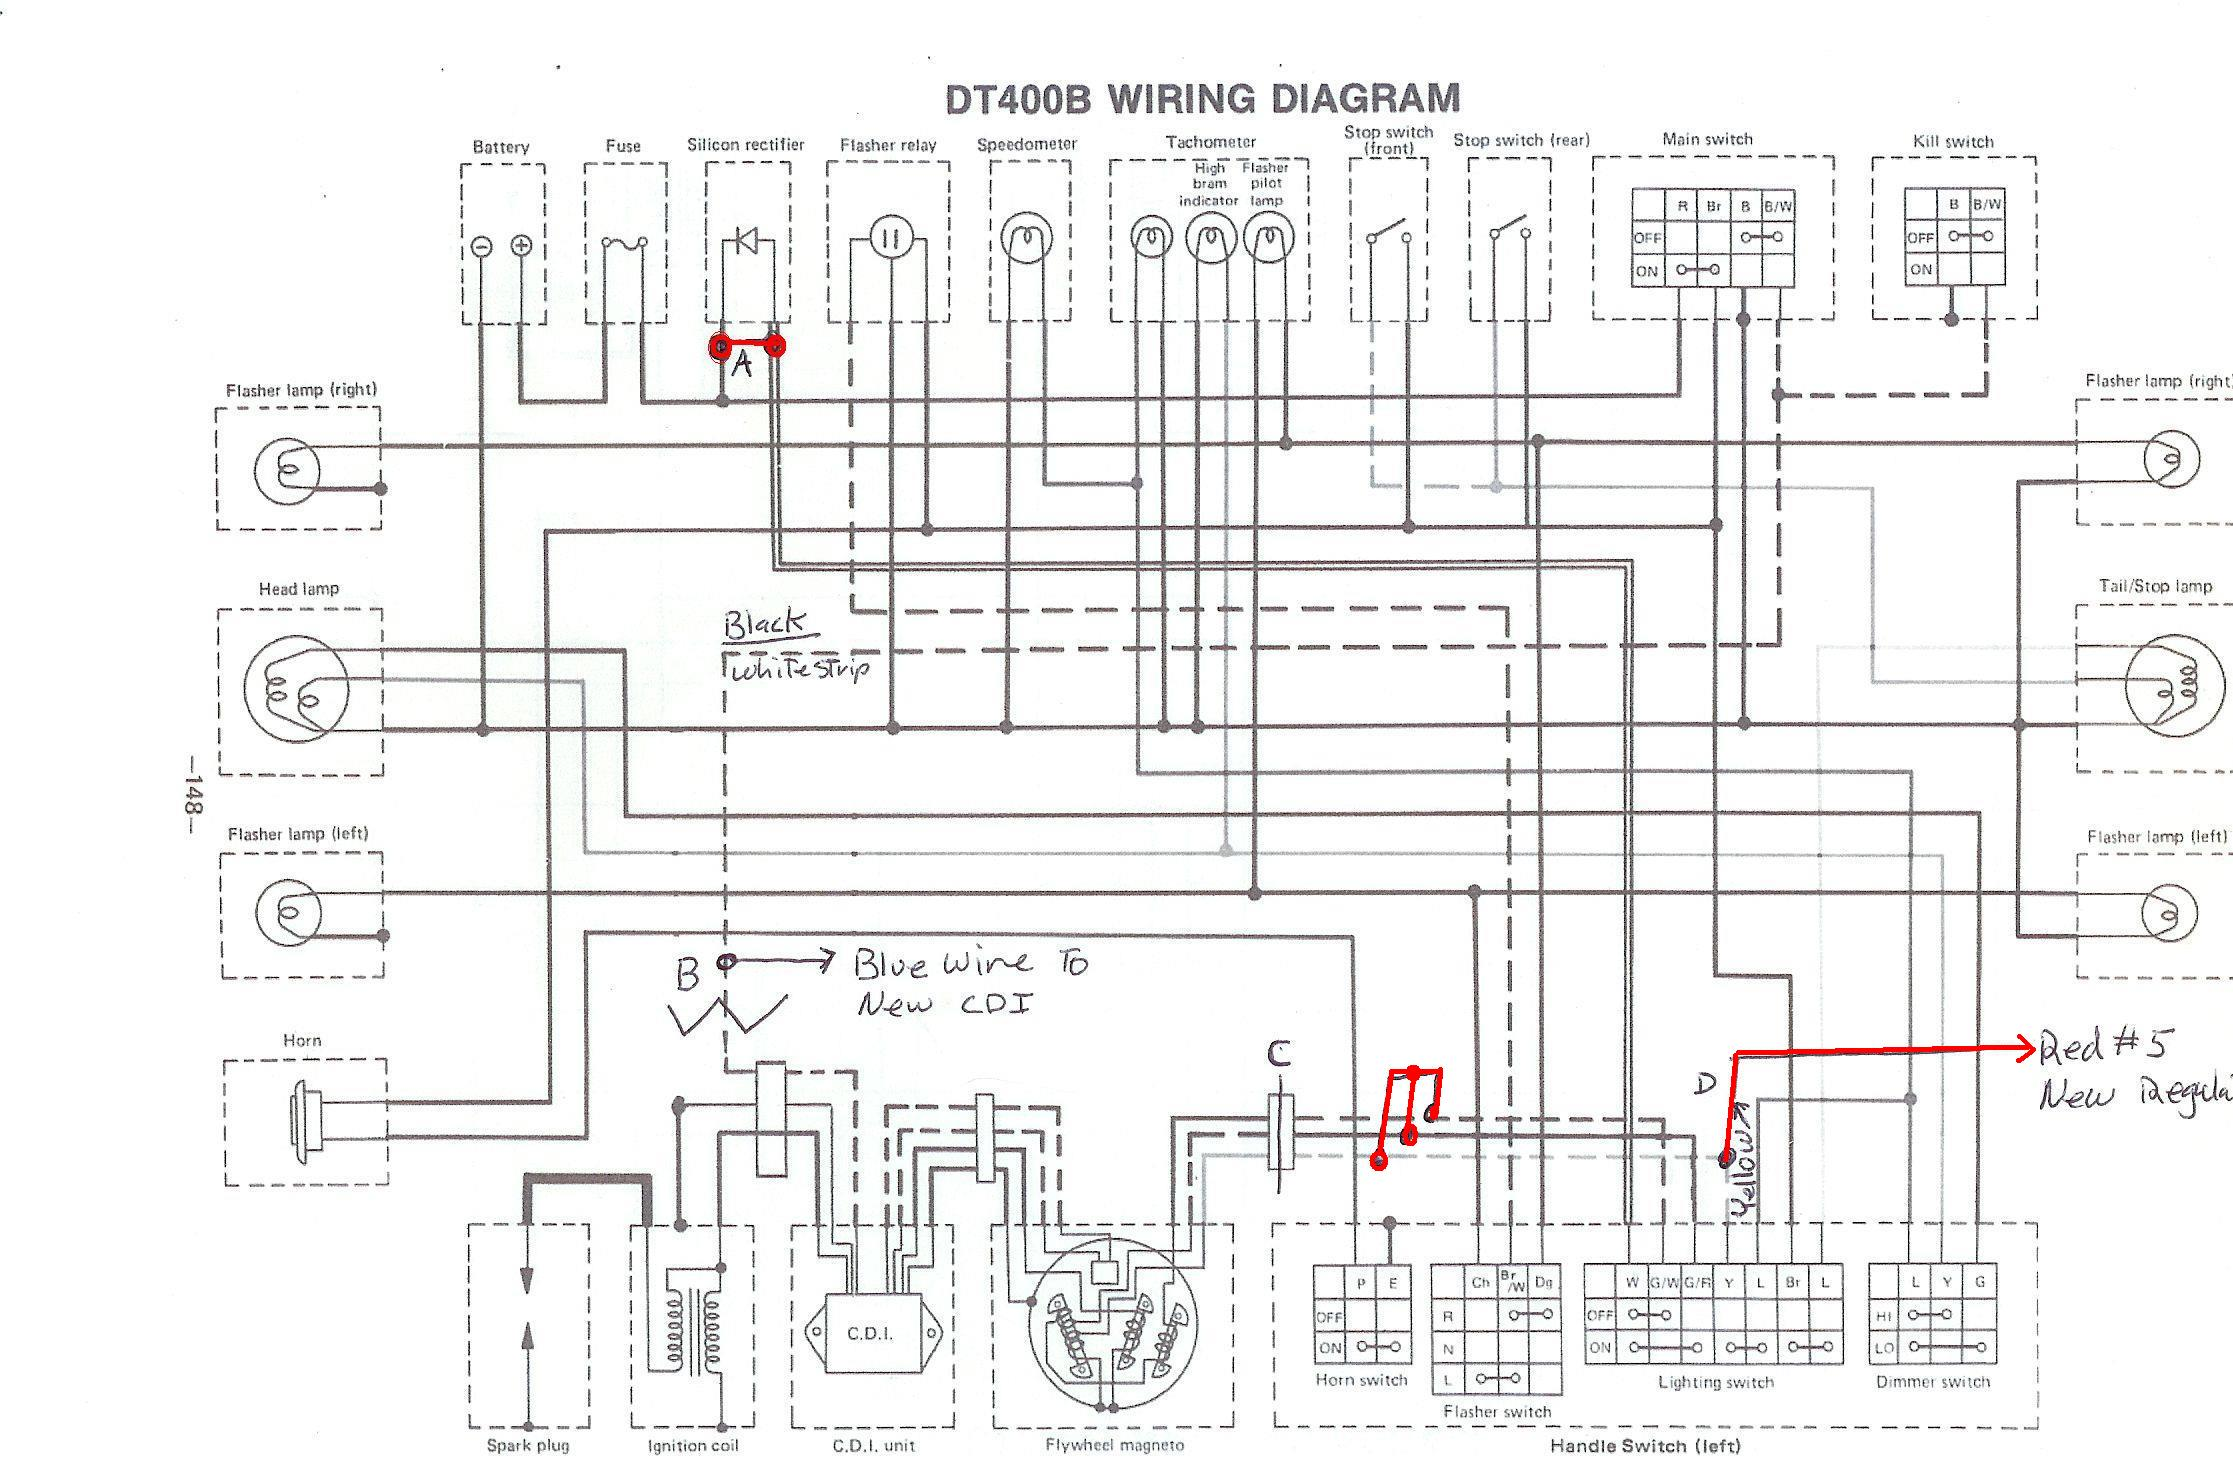 Yamaha Ty 250 Wiring Diagram Starting Know About 2002 Royal Enfield Powerdynamo For Rh Biz